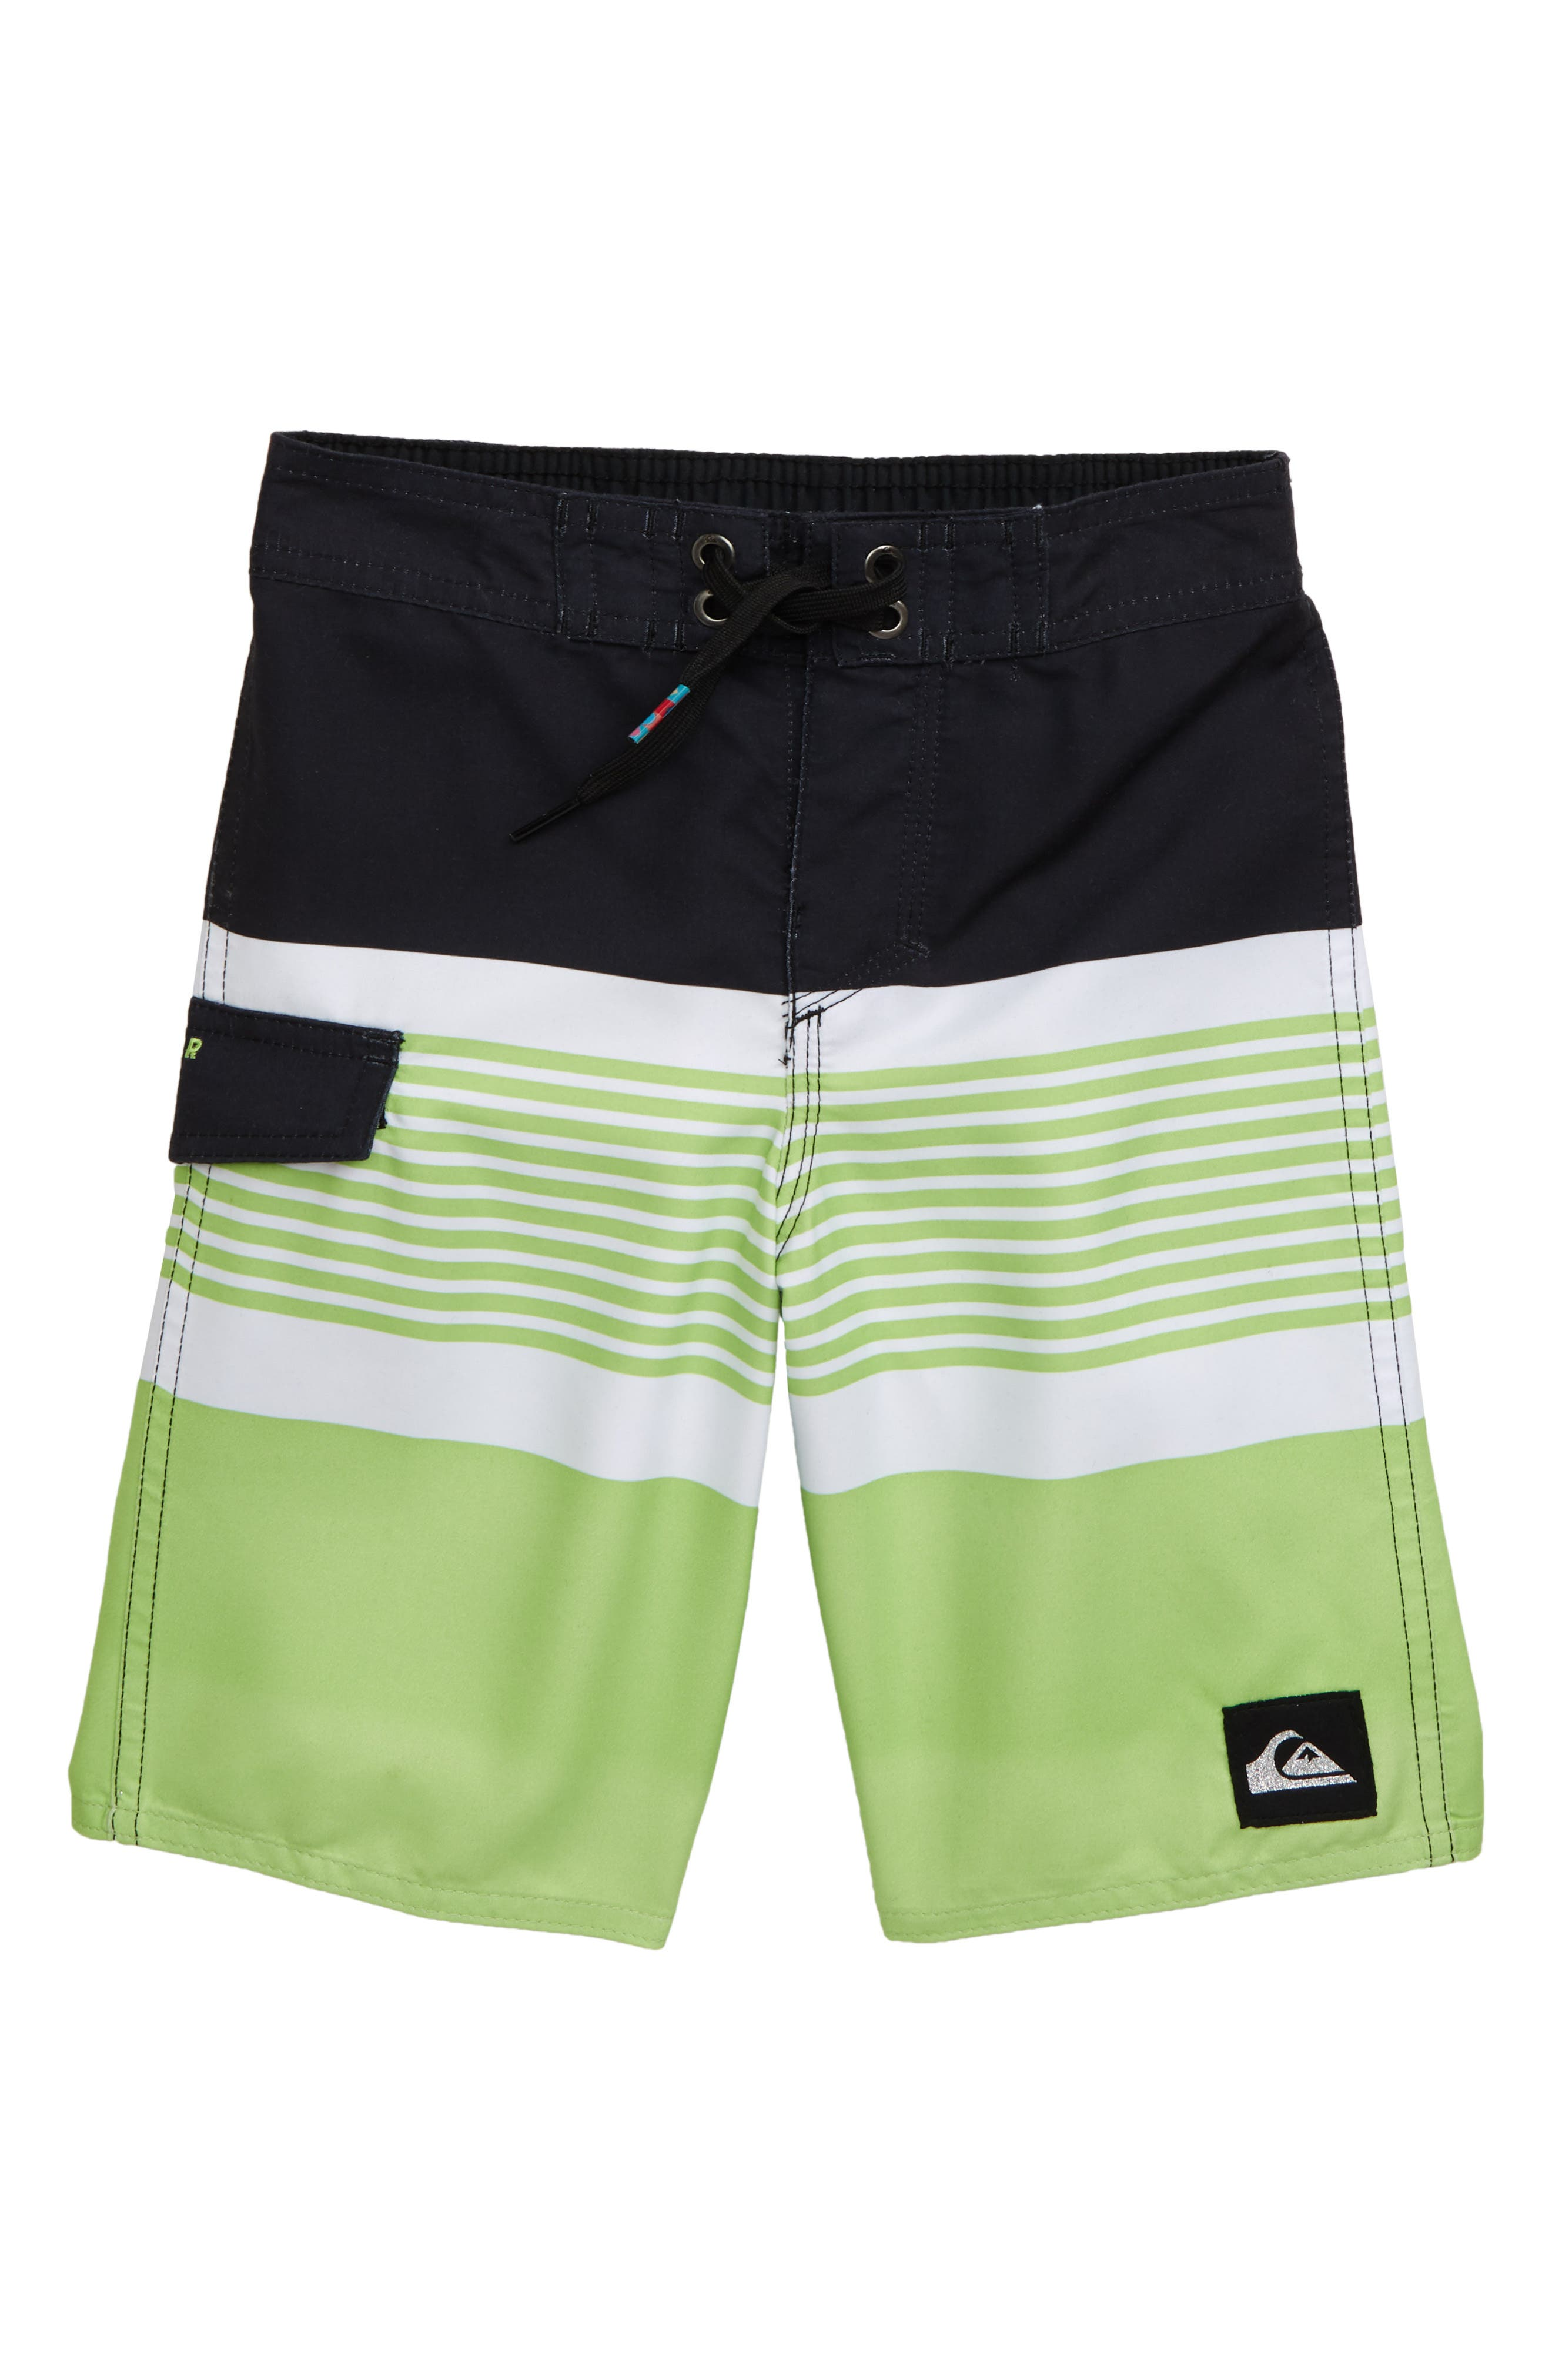 Toddler Boys Quiksilver Division Board Shorts Size 2T  Black